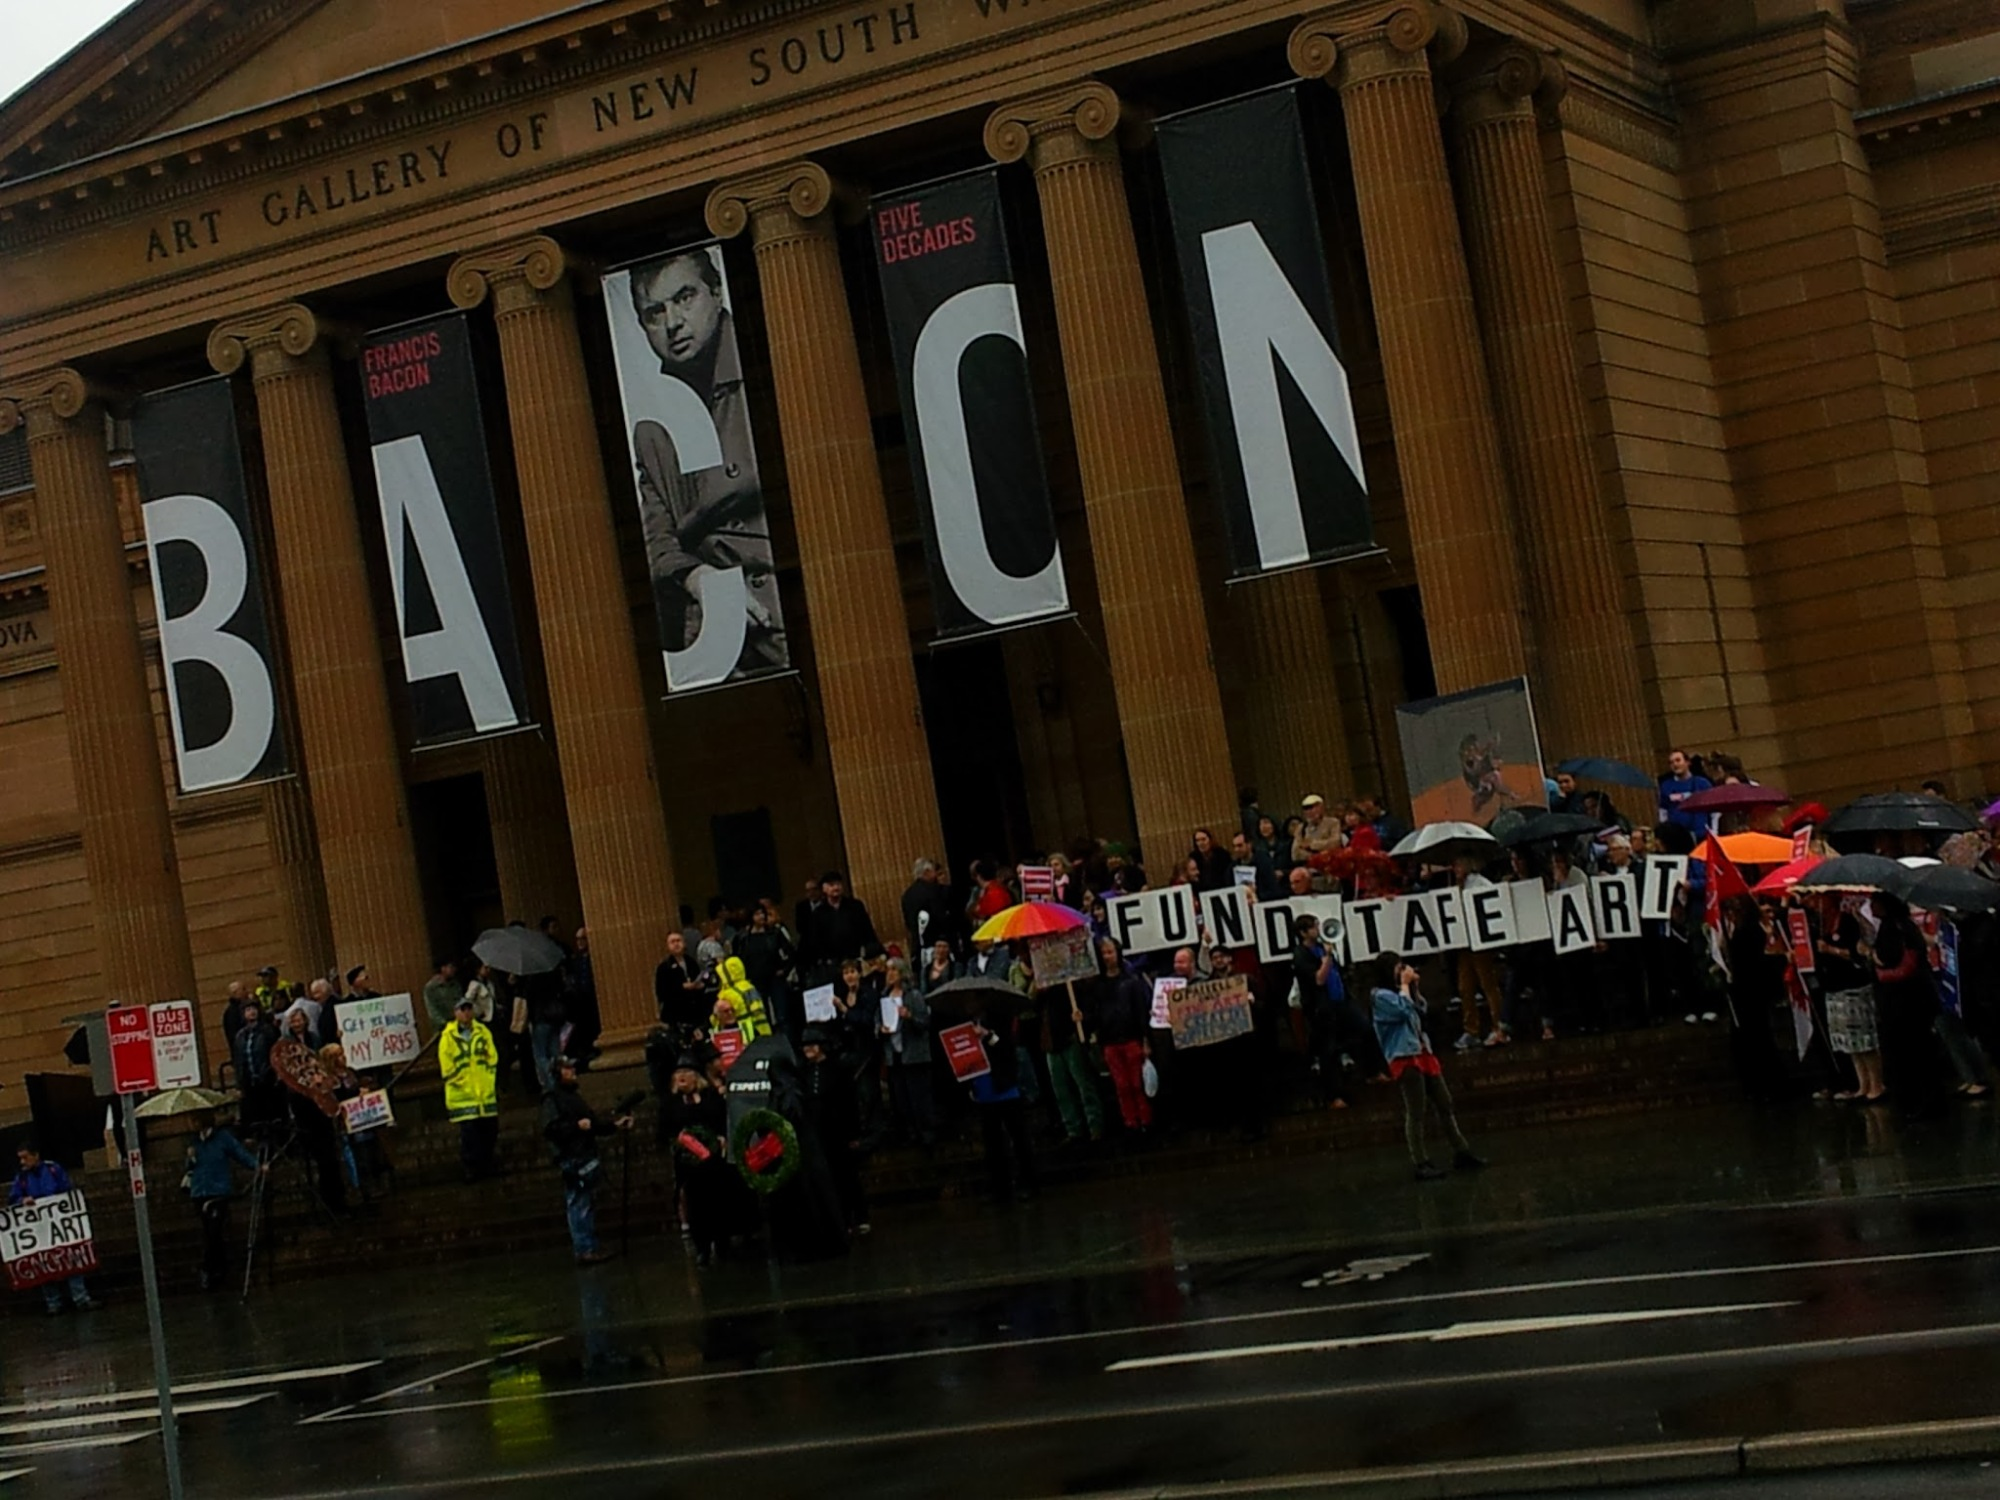 TAFE Art Cuts Protest outside AGNSW